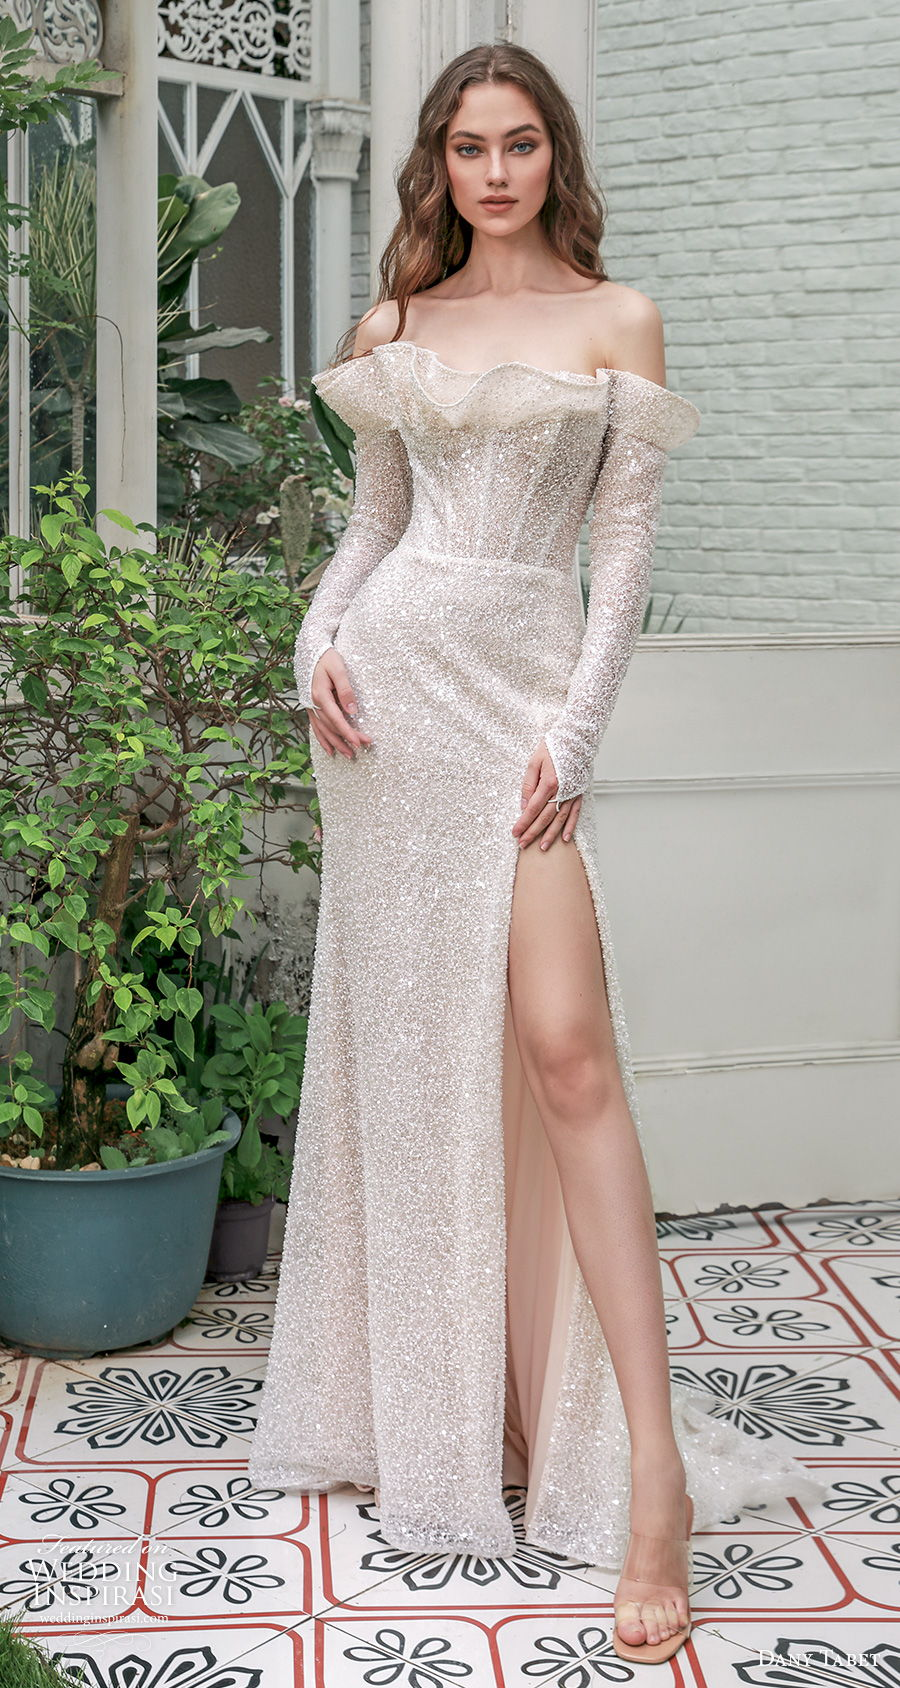 dany tabet 2021 emerge bridal off the shoulder crumb catcher neckline full embellishment glitter slit skirt glamorous sheath wedding dress mid backshort train (15) mv